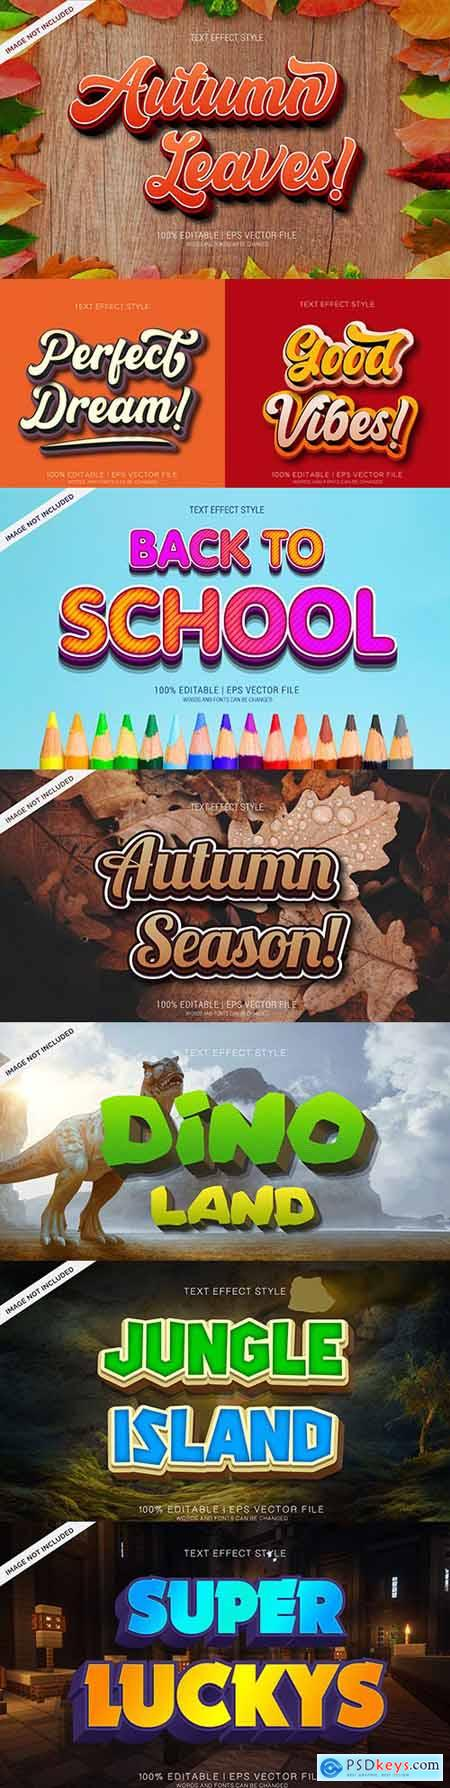 Editable font effect text collection illustration design 153